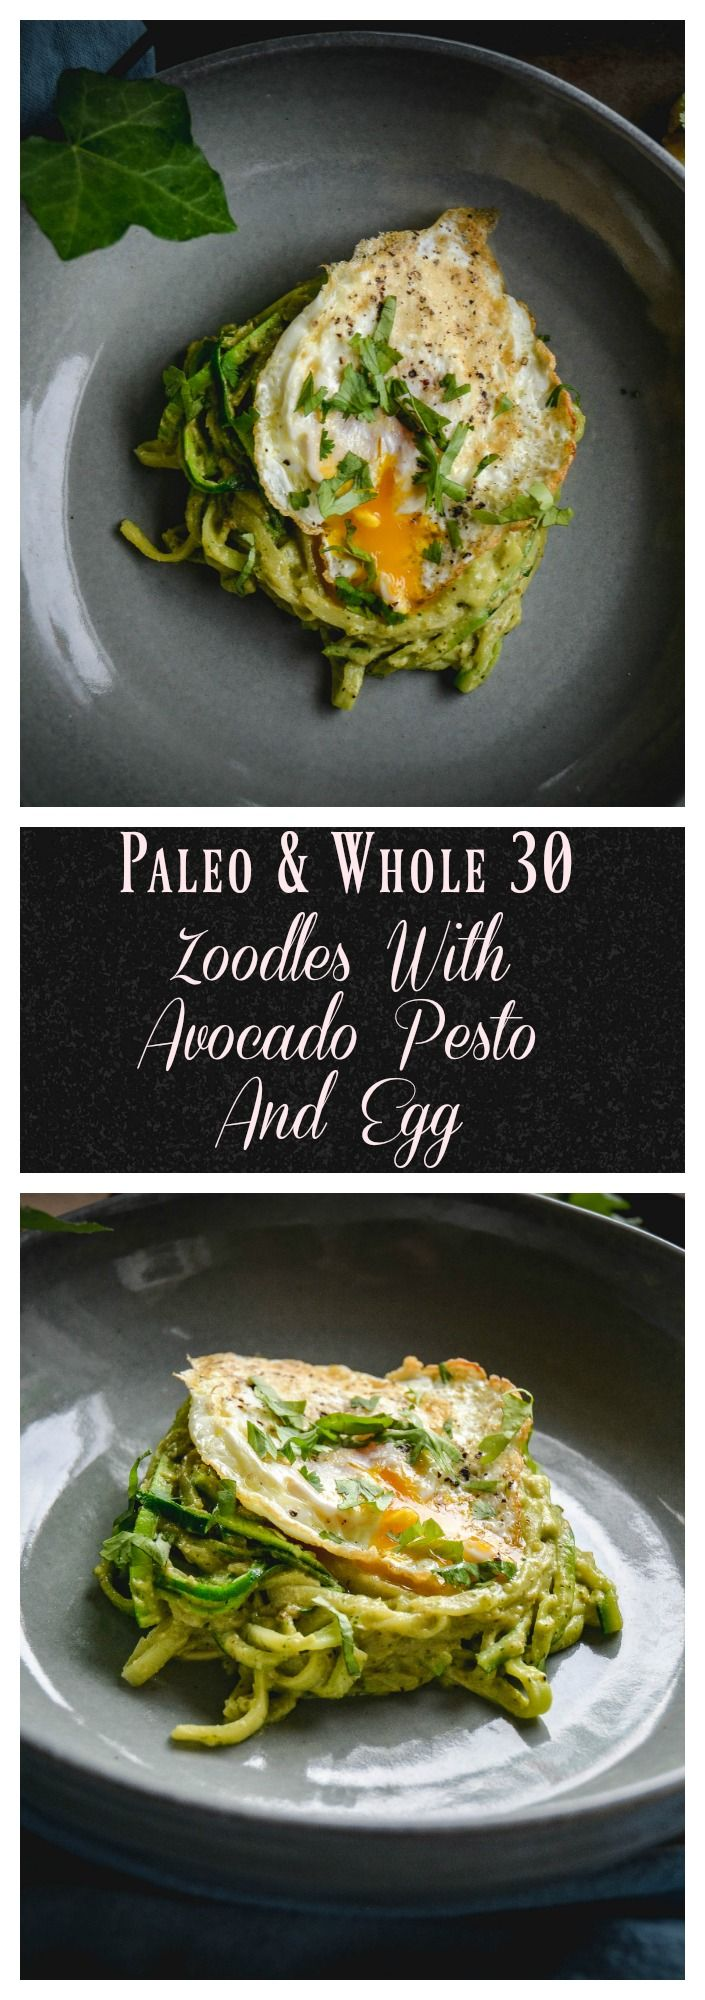 A speedy dish for when you haven't gotten much on hand. Zucchini noodles (zoodles), avocado pesto and a fried egg. It's paleo, whole 30 and is a 10 minute dinner. #whole30, paleo, #quickmeals #zoodles